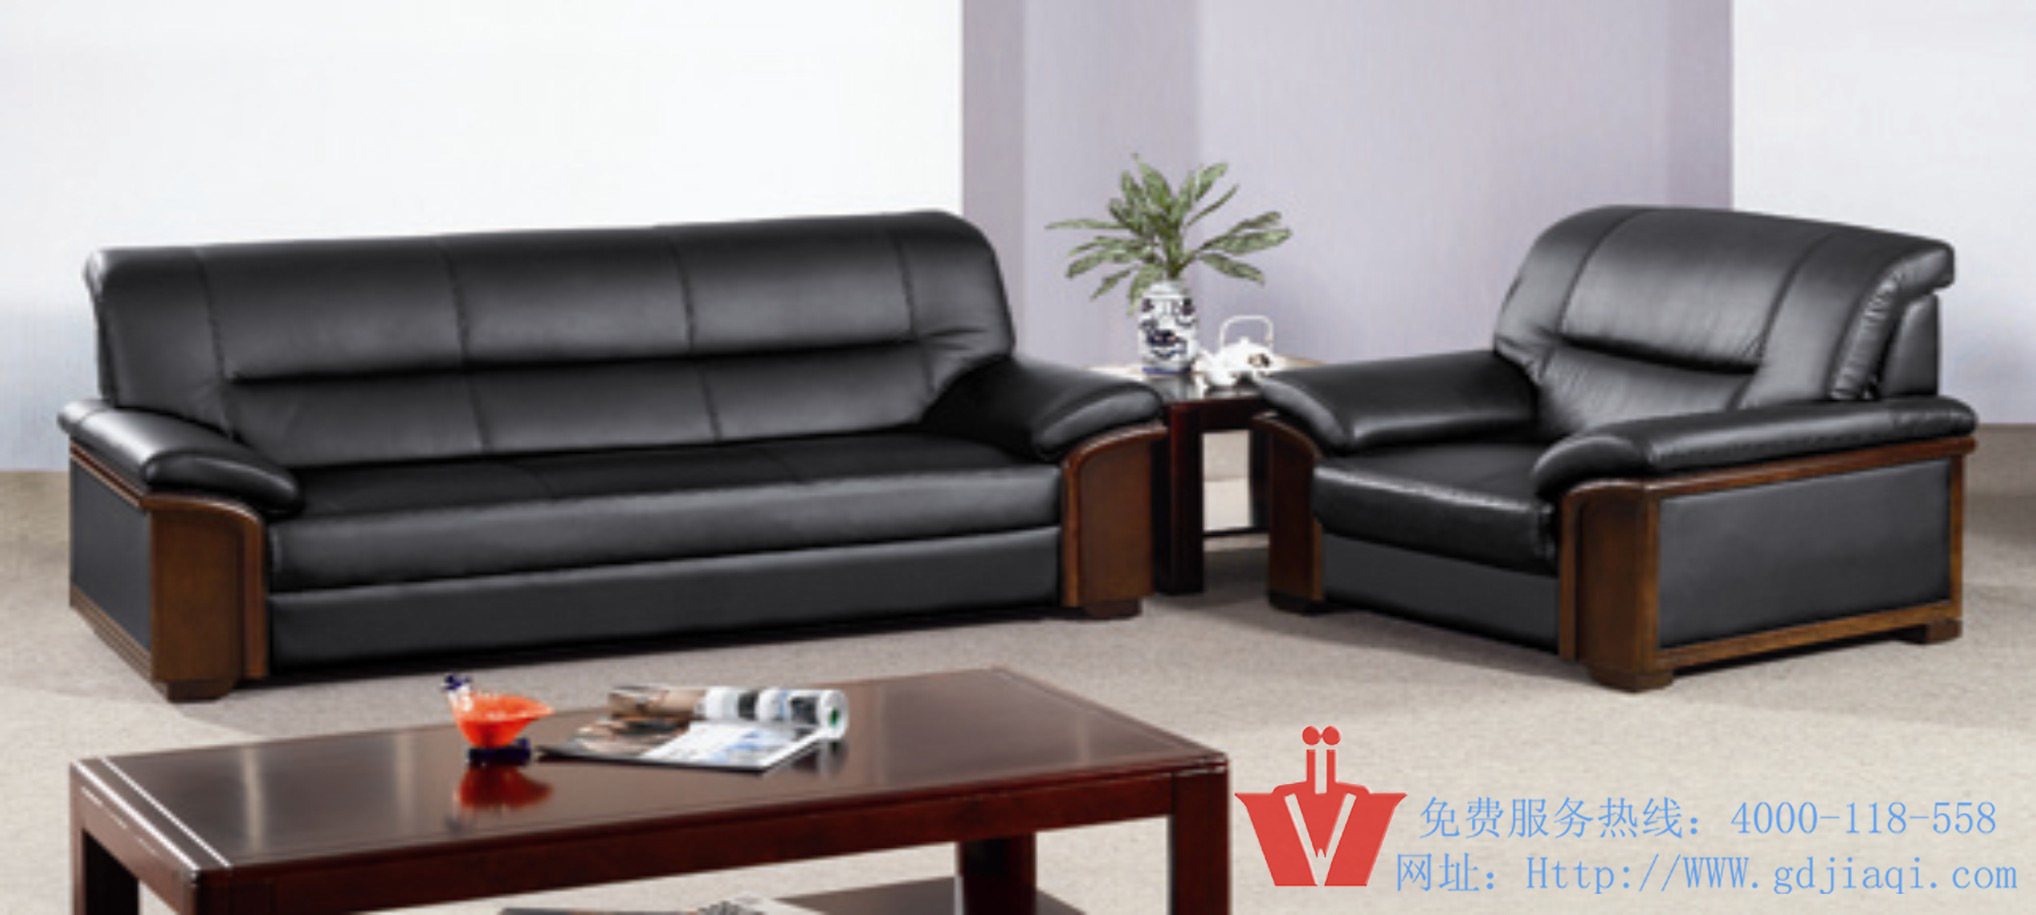 China Elegant Black Leather Executive Office Sofa Set WP5  : Elegant Black Leather Executive Office Sofa Set WP5 3011  from wangpad.en.made-in-china.com size 2036 x 915 jpeg 237kB